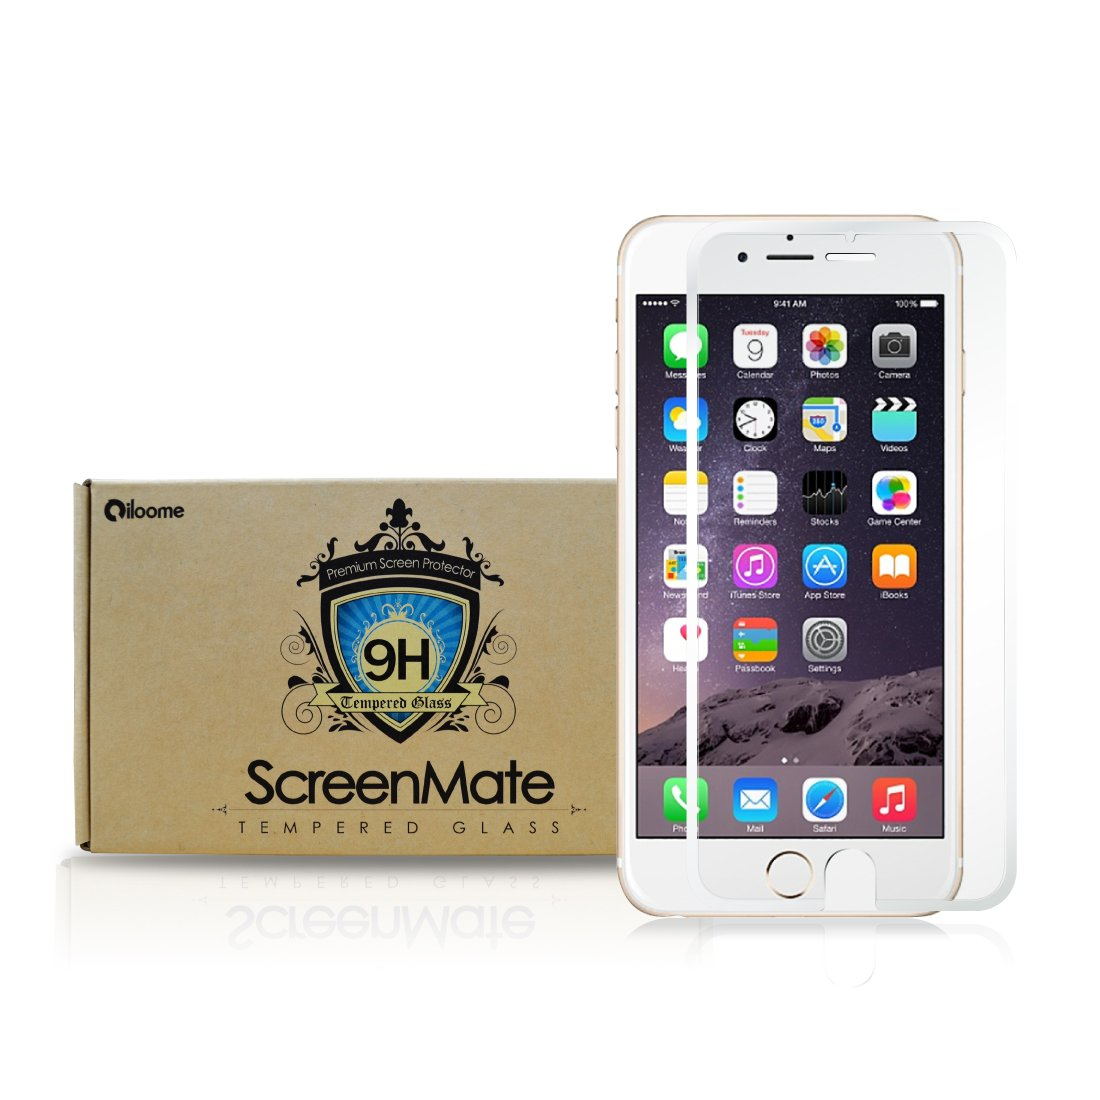 iloome Apple iPhone 6 4.7in (Arctic White) ScreenMate Real Tempered Glass 9H Hardness Premium Screen Protector with CurveProtectTM Technology, Rounded Edges ...